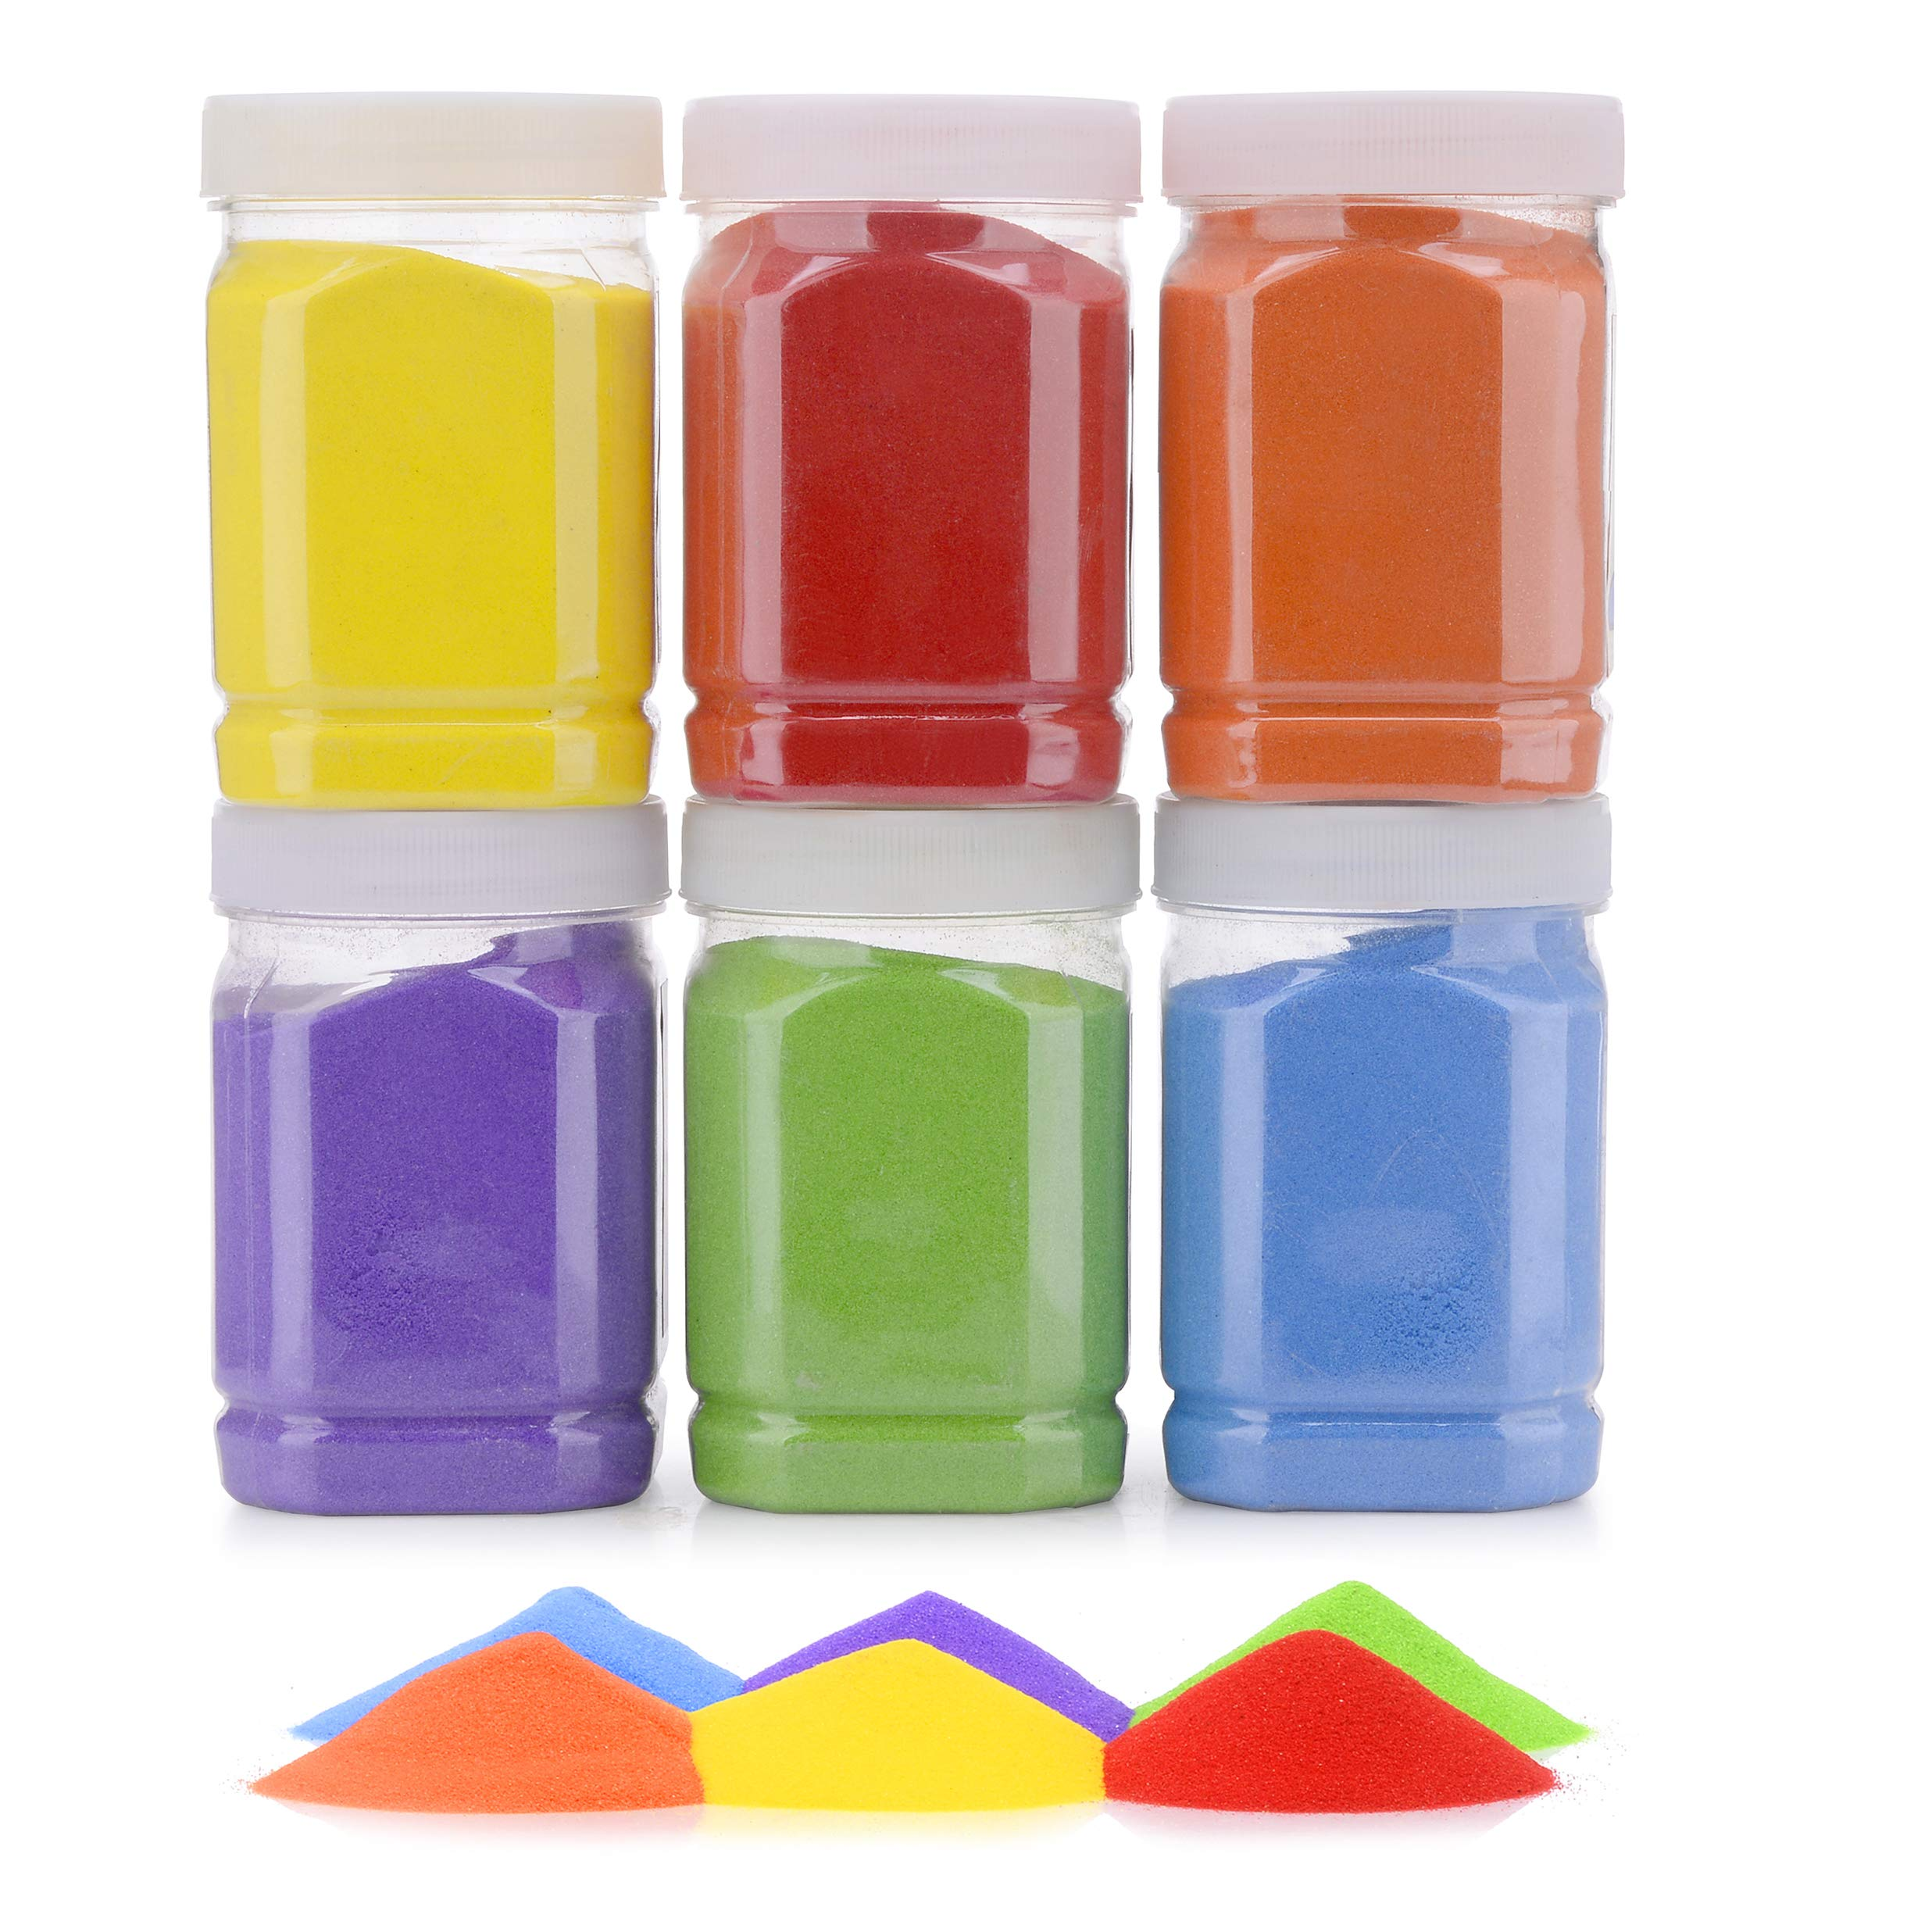 [7.2 Pound] Art Sand/Scenic Sand Non-Toxic Colored Sand for Kids' Arts & Crafts, Terrarium Sand Play DIY Drawing Sandbox Wedding Sand for Decorations and Crafty Collection Sand Bottles (6 Bottles)